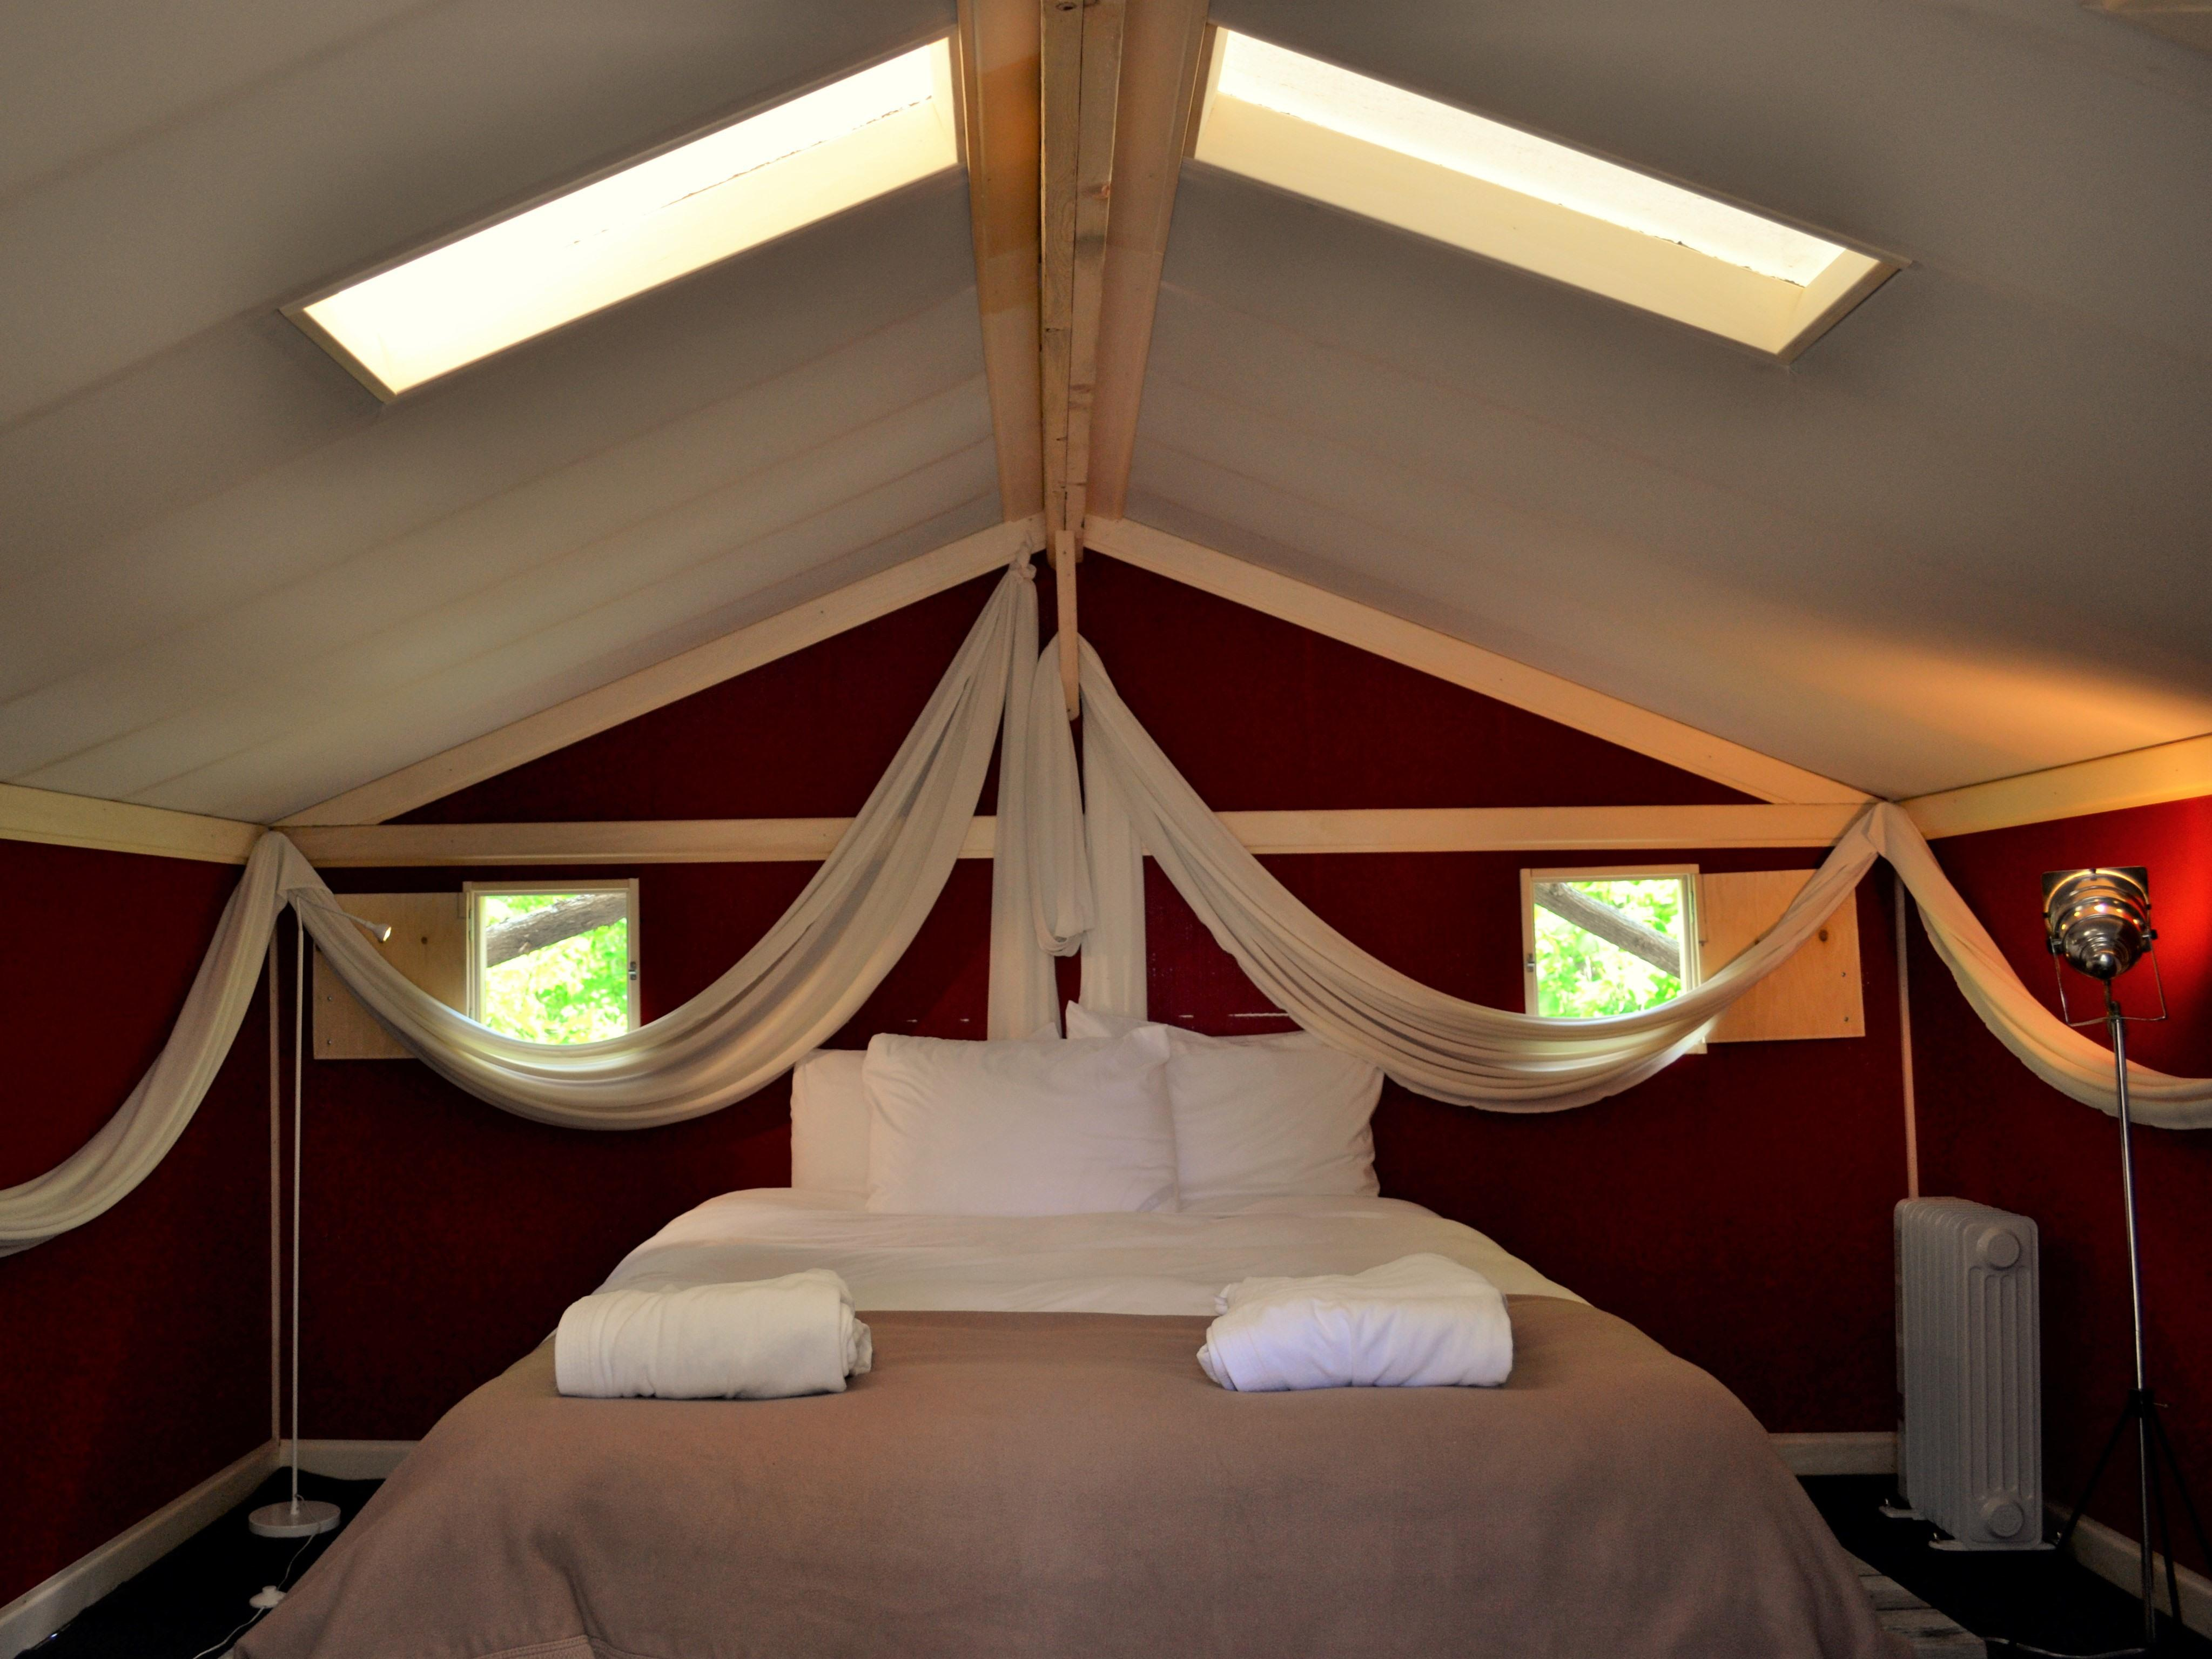 Tent-Premium-Shared Bathroom-Mountain View-Tente romantique